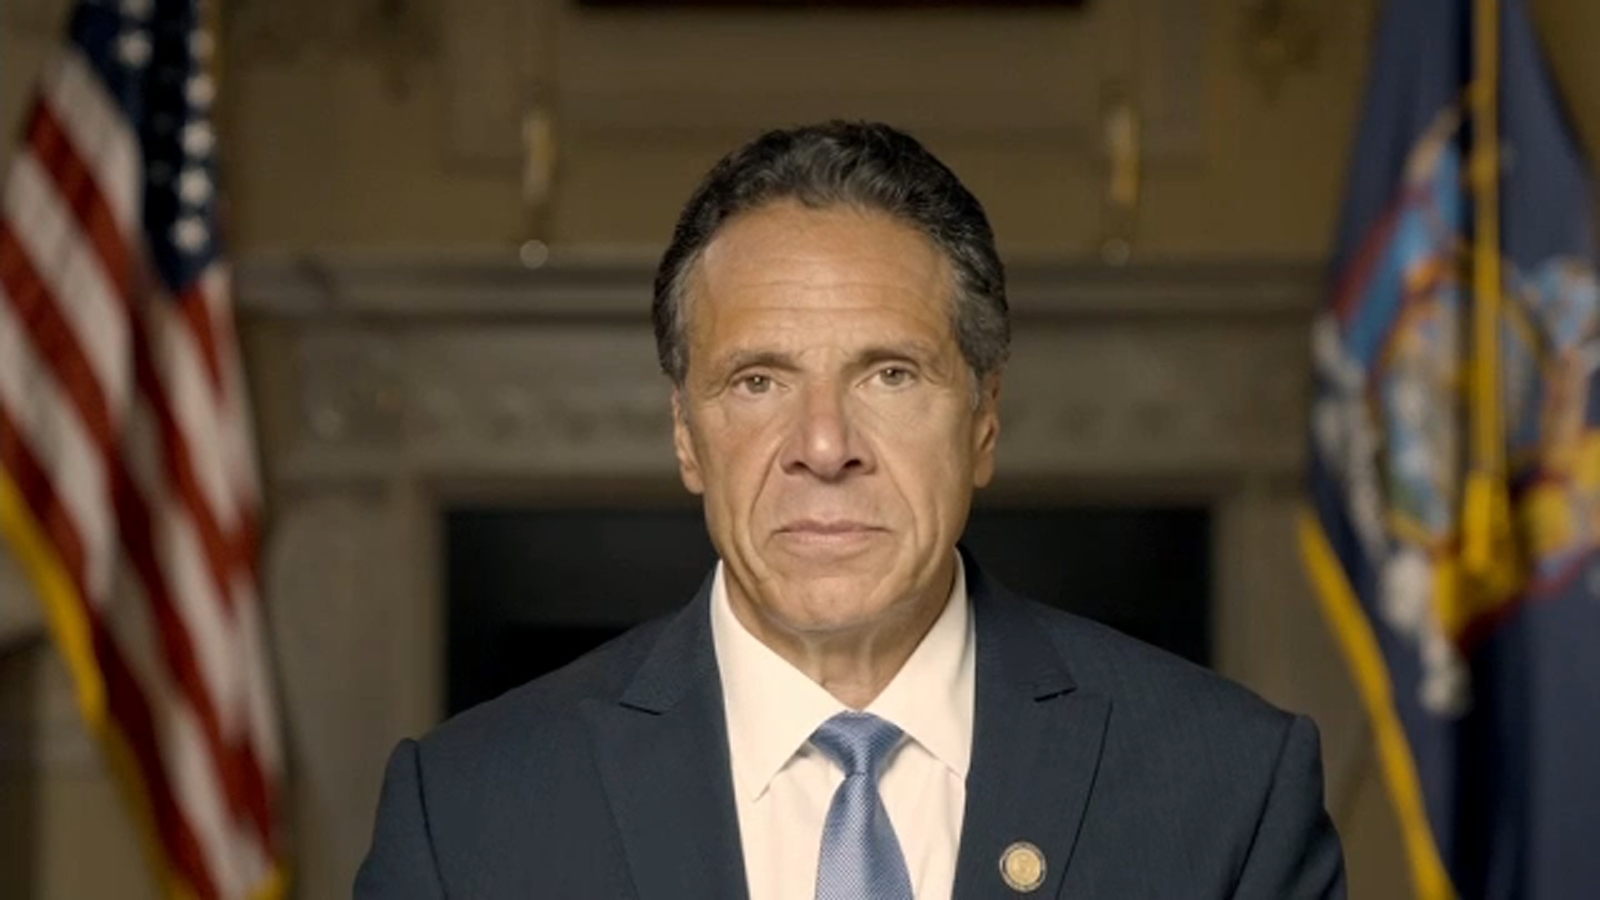 Protest expected outside Cuomo's office